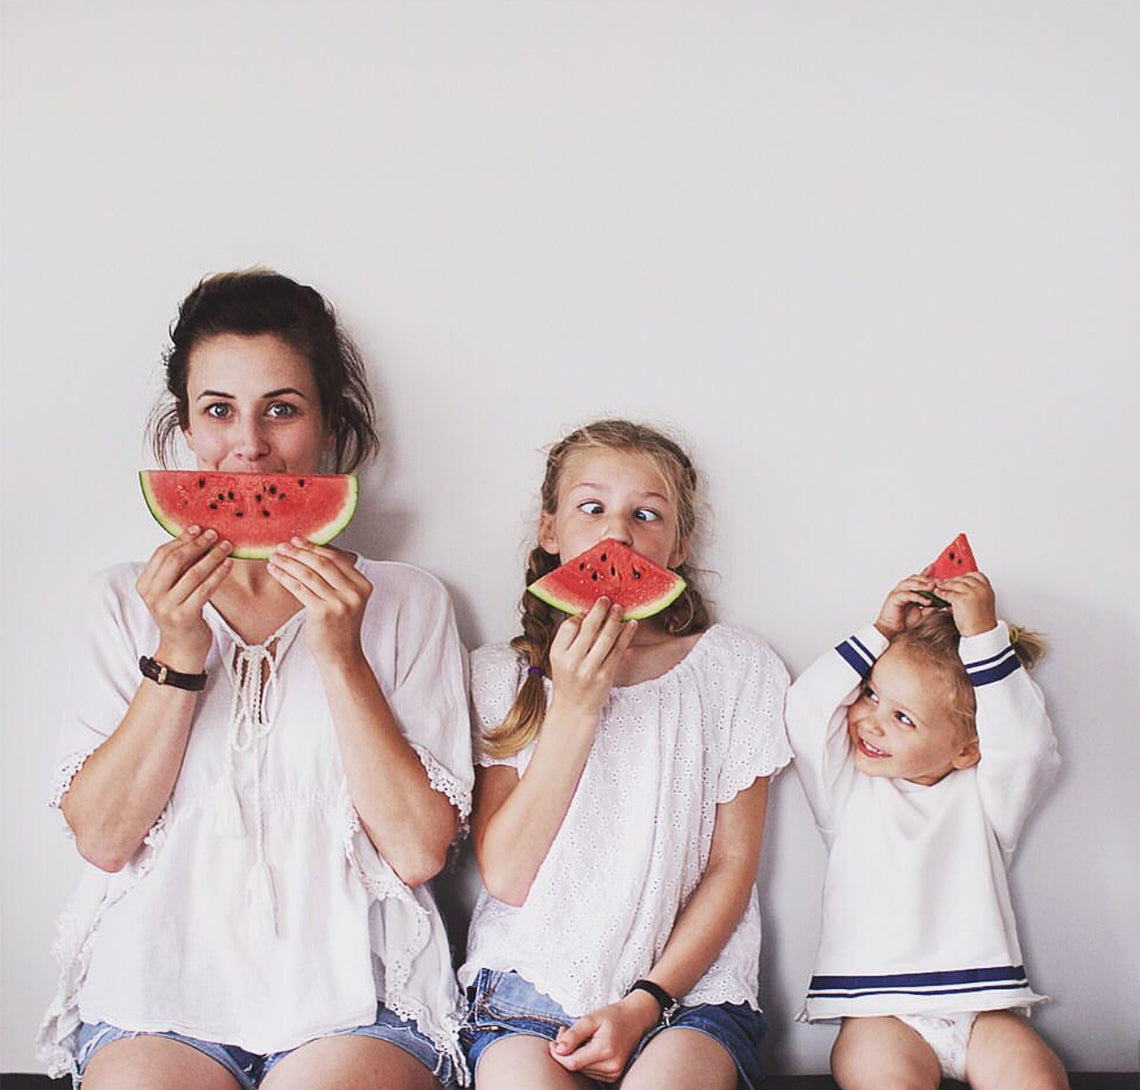 Dr Laubscher's Top tips to get your kids to eat well